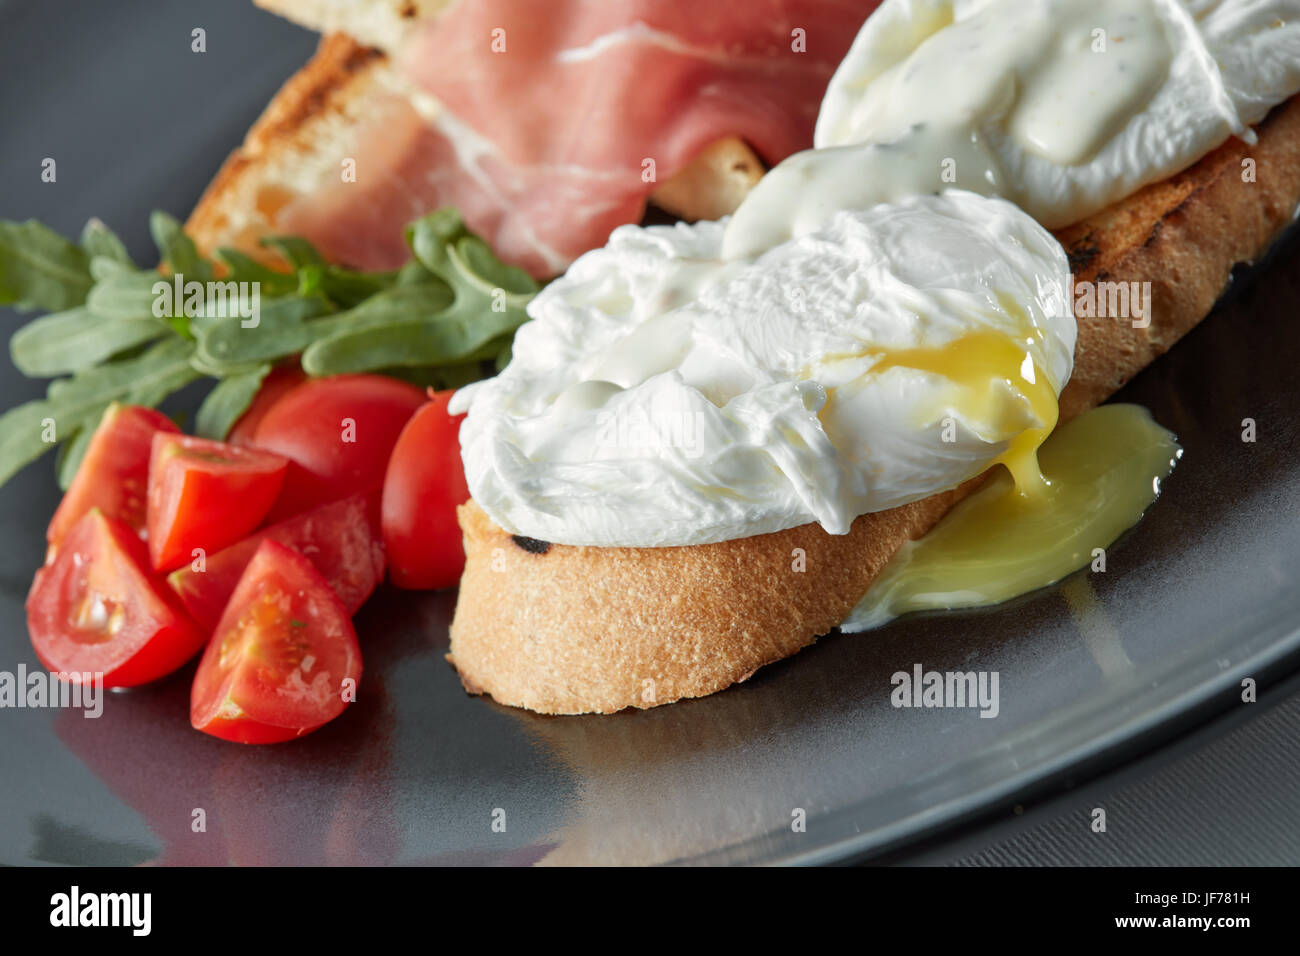 Eggs Benedict on toasted muffins - Stock Image